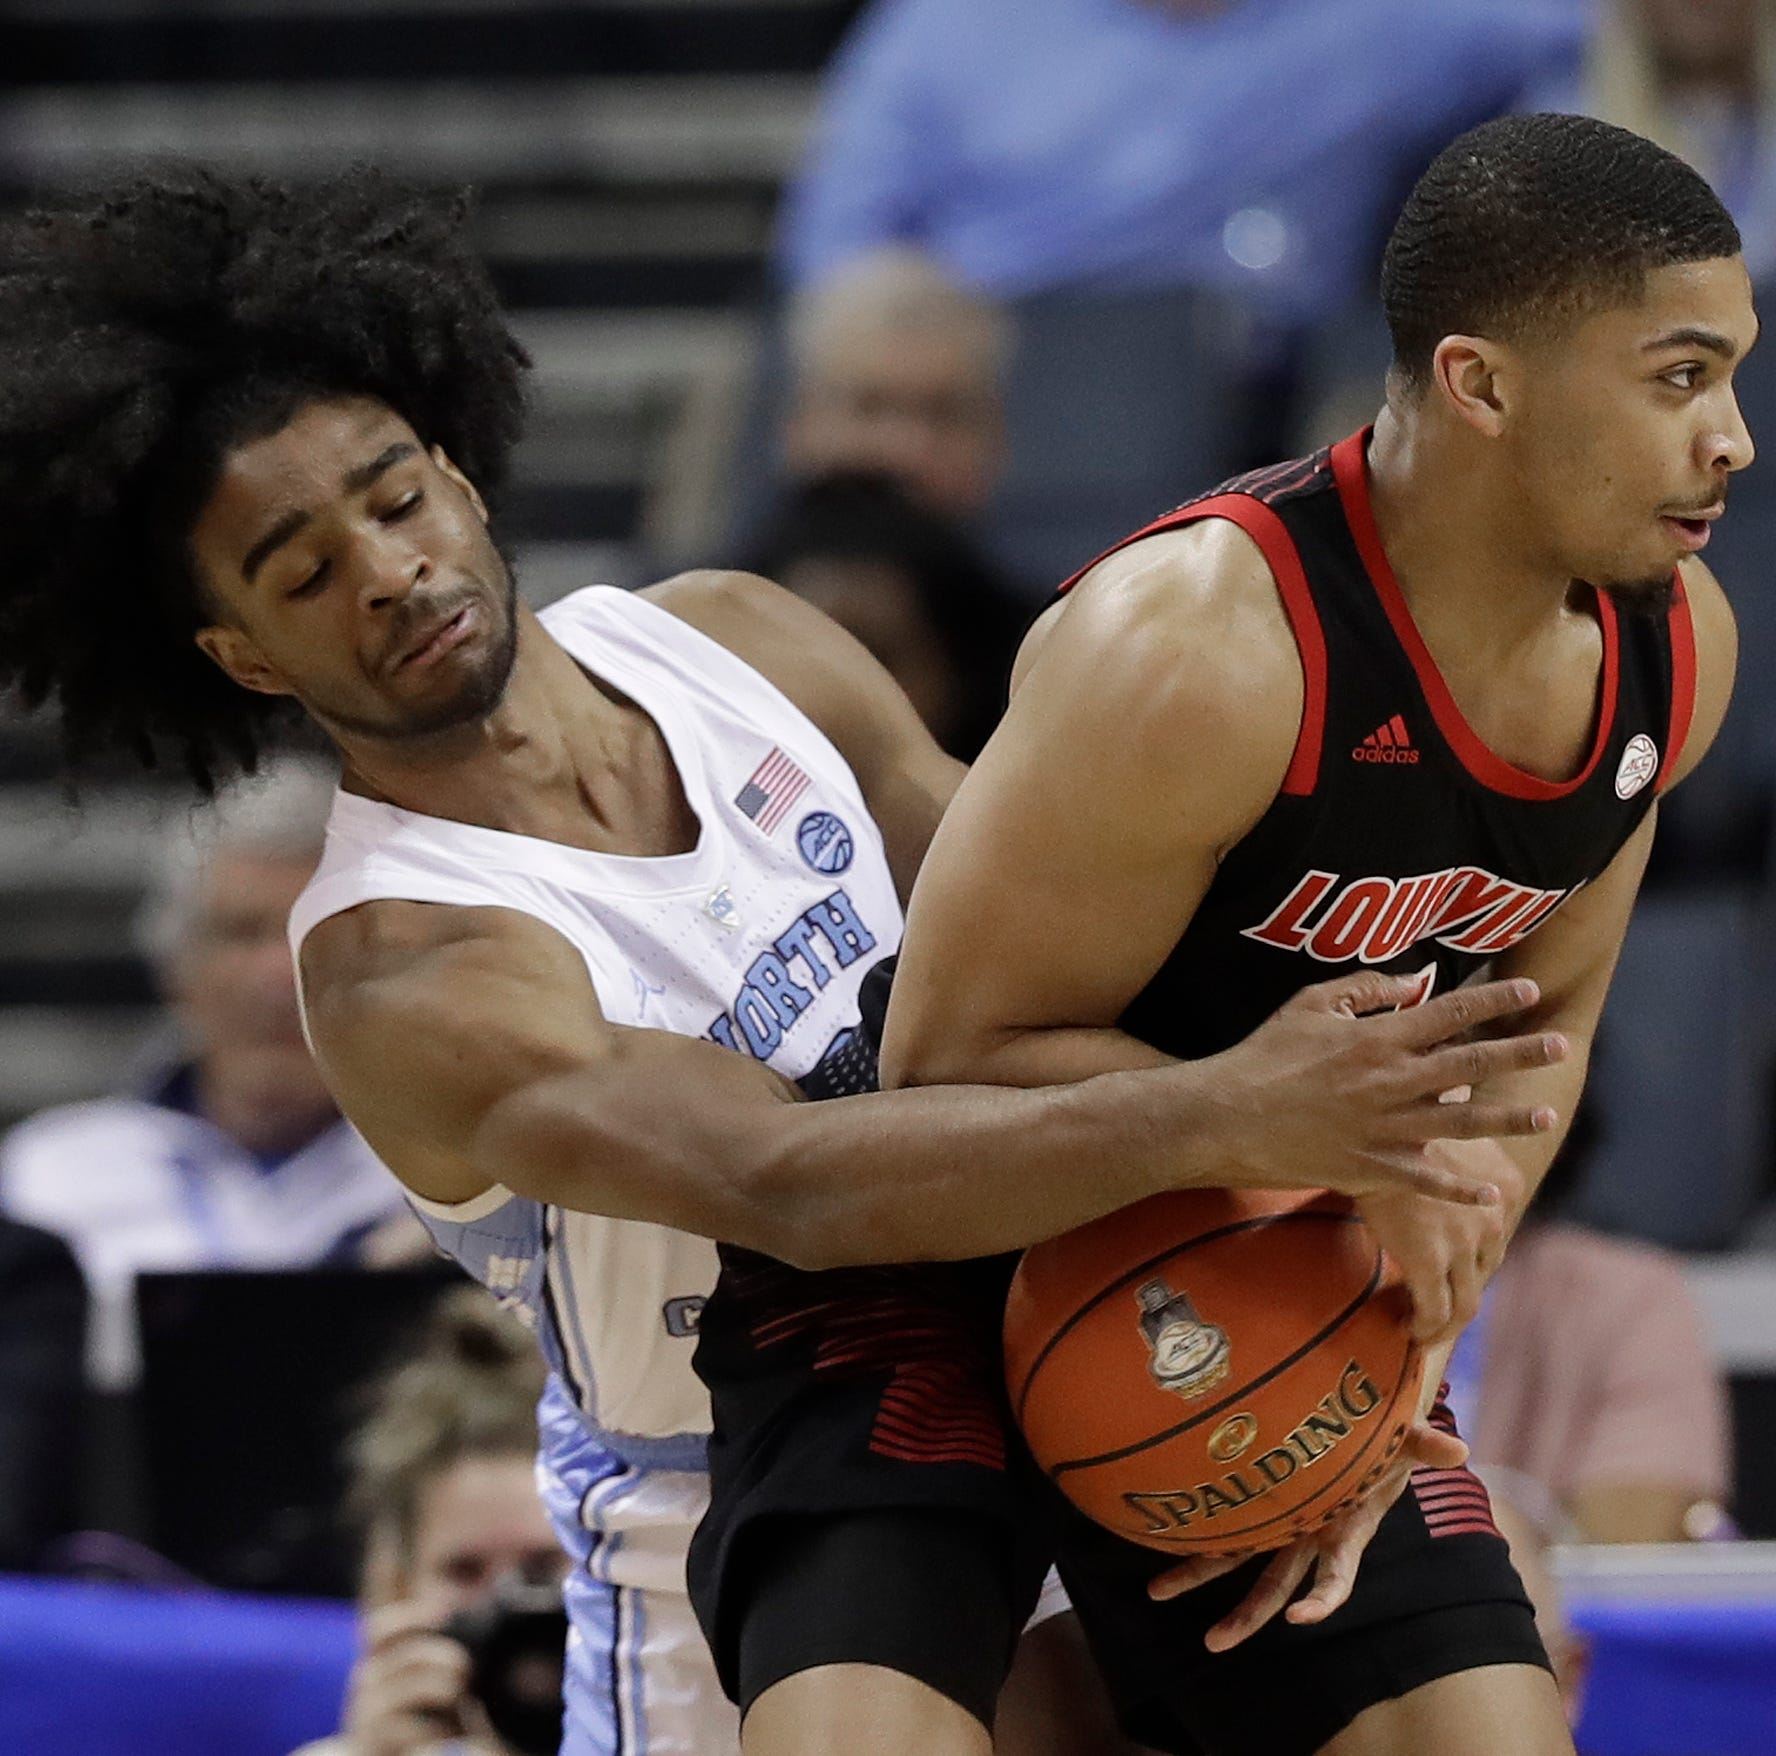 Louisville outrun but not demoralized after loss to North Carolina